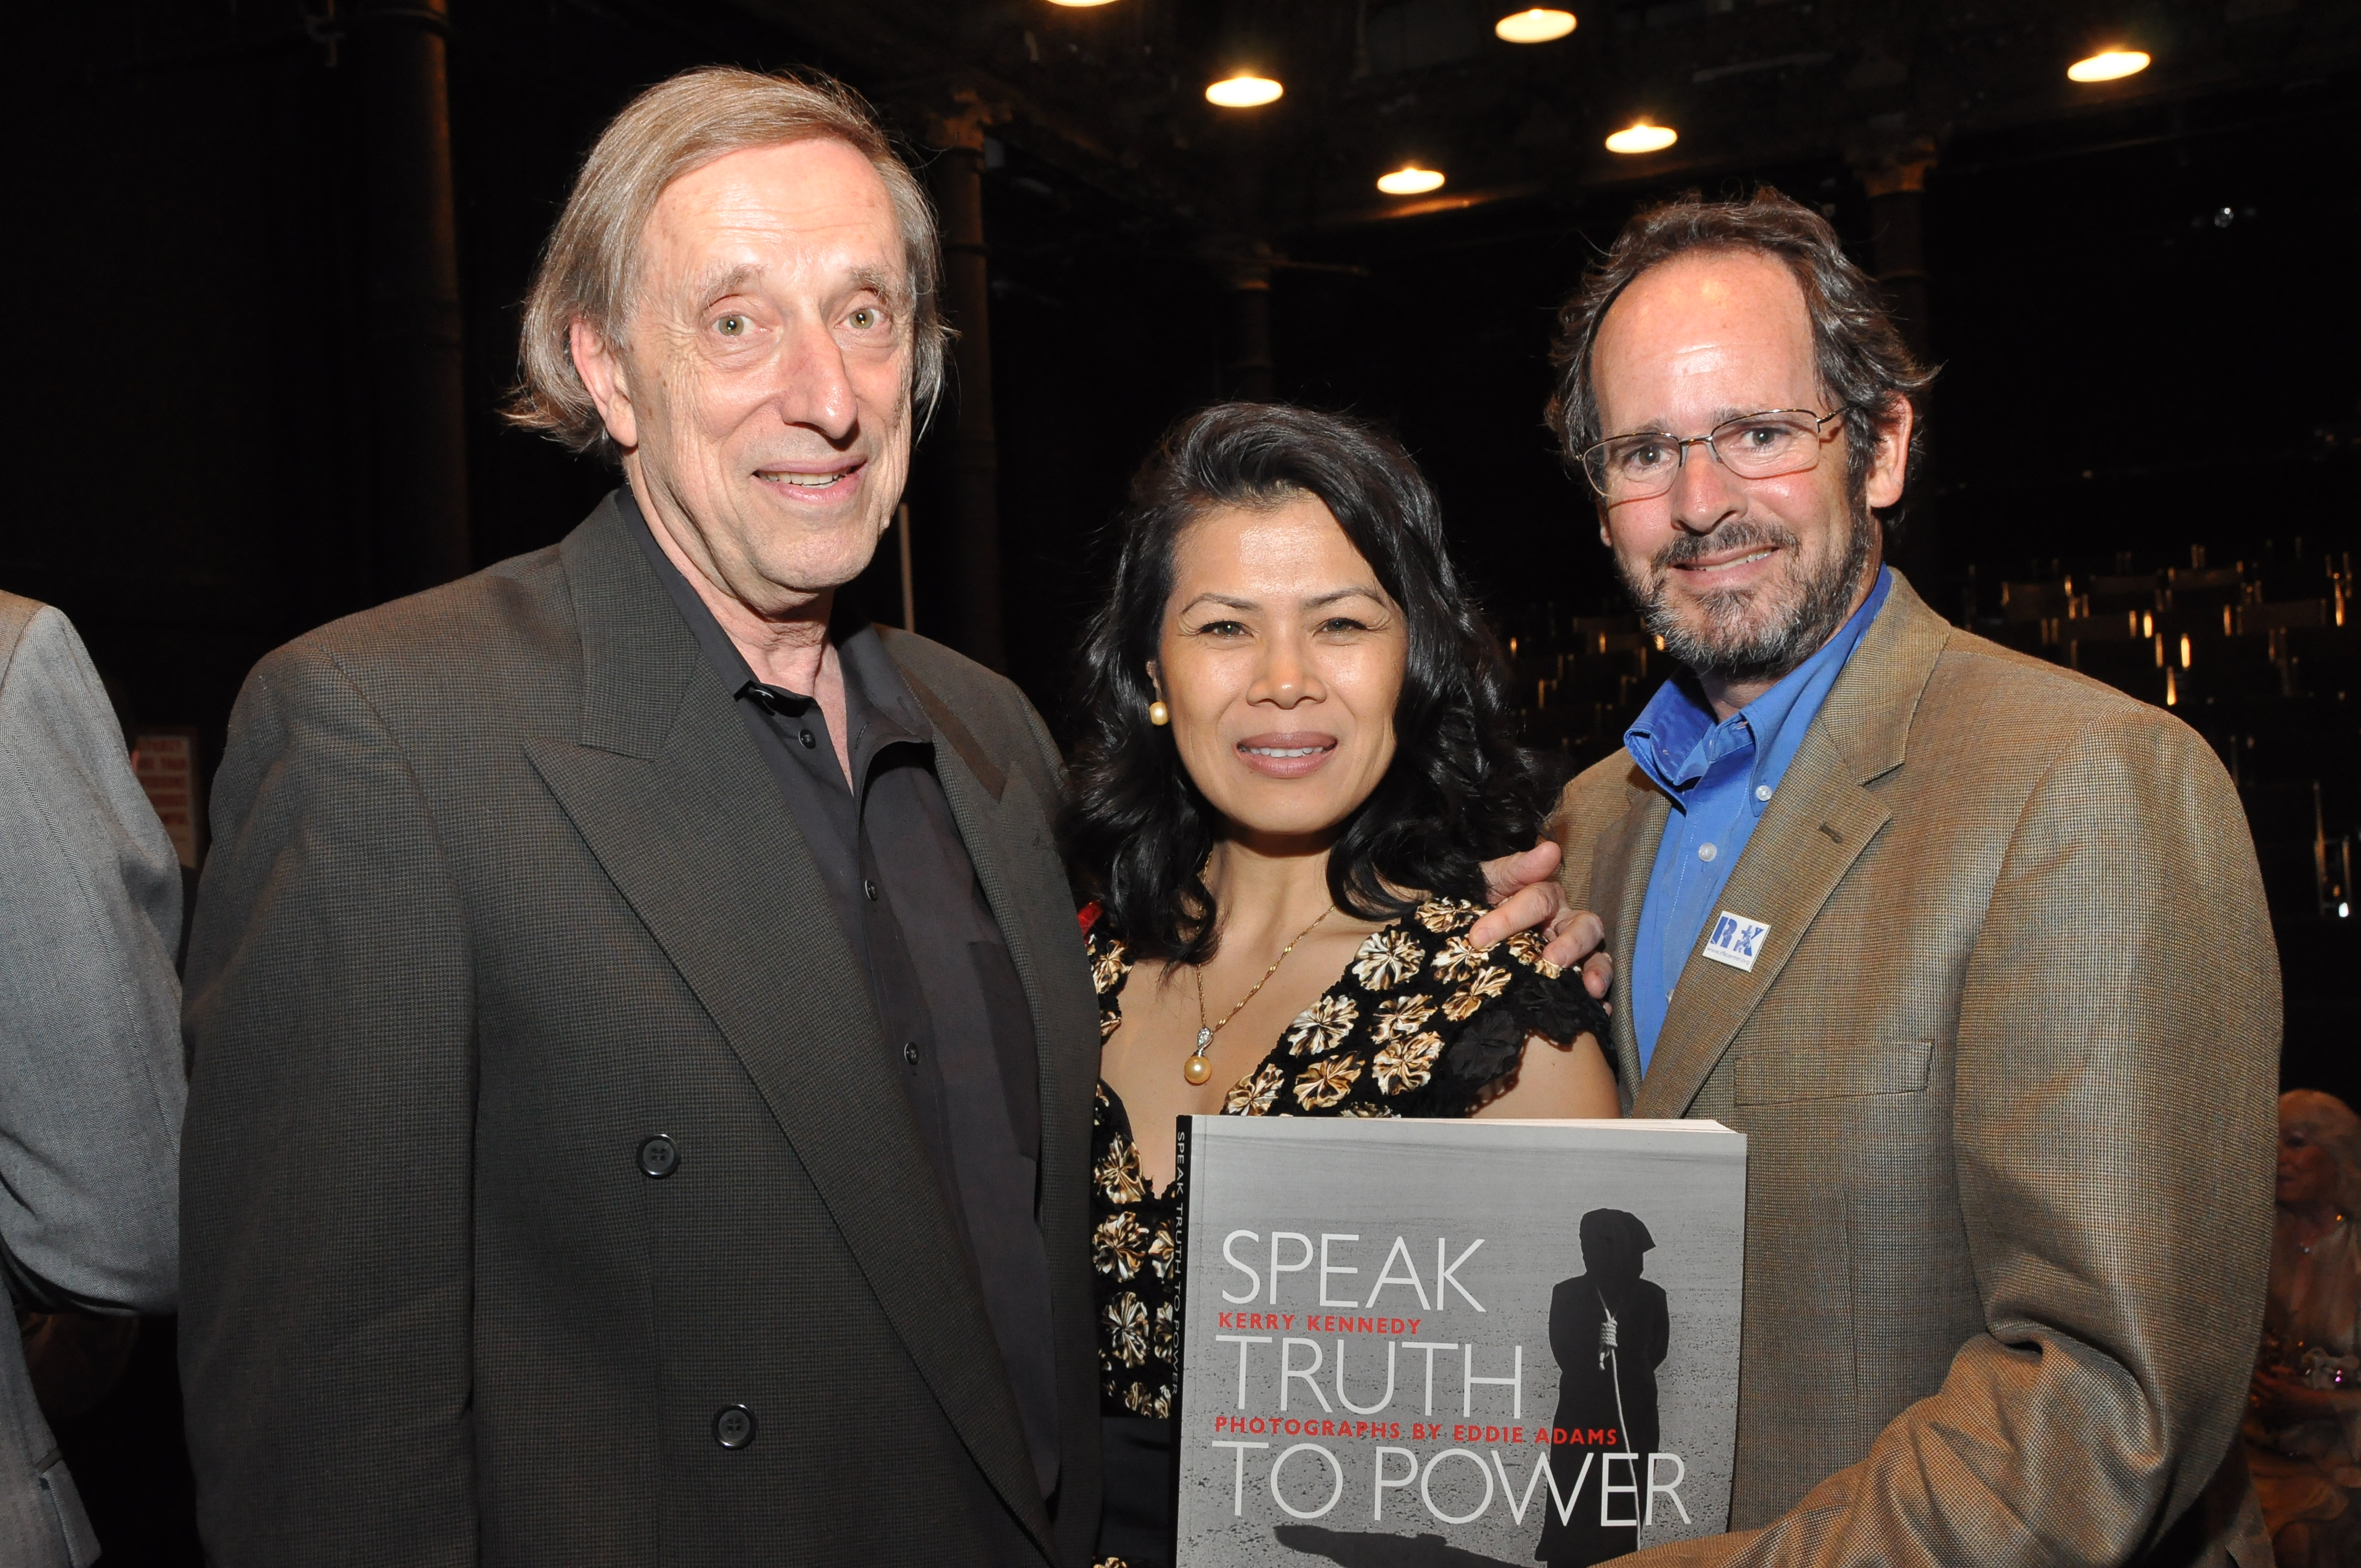 Theary Seng with Ariel Dorfman, John Heffernan (NYC, 3 May 2010)